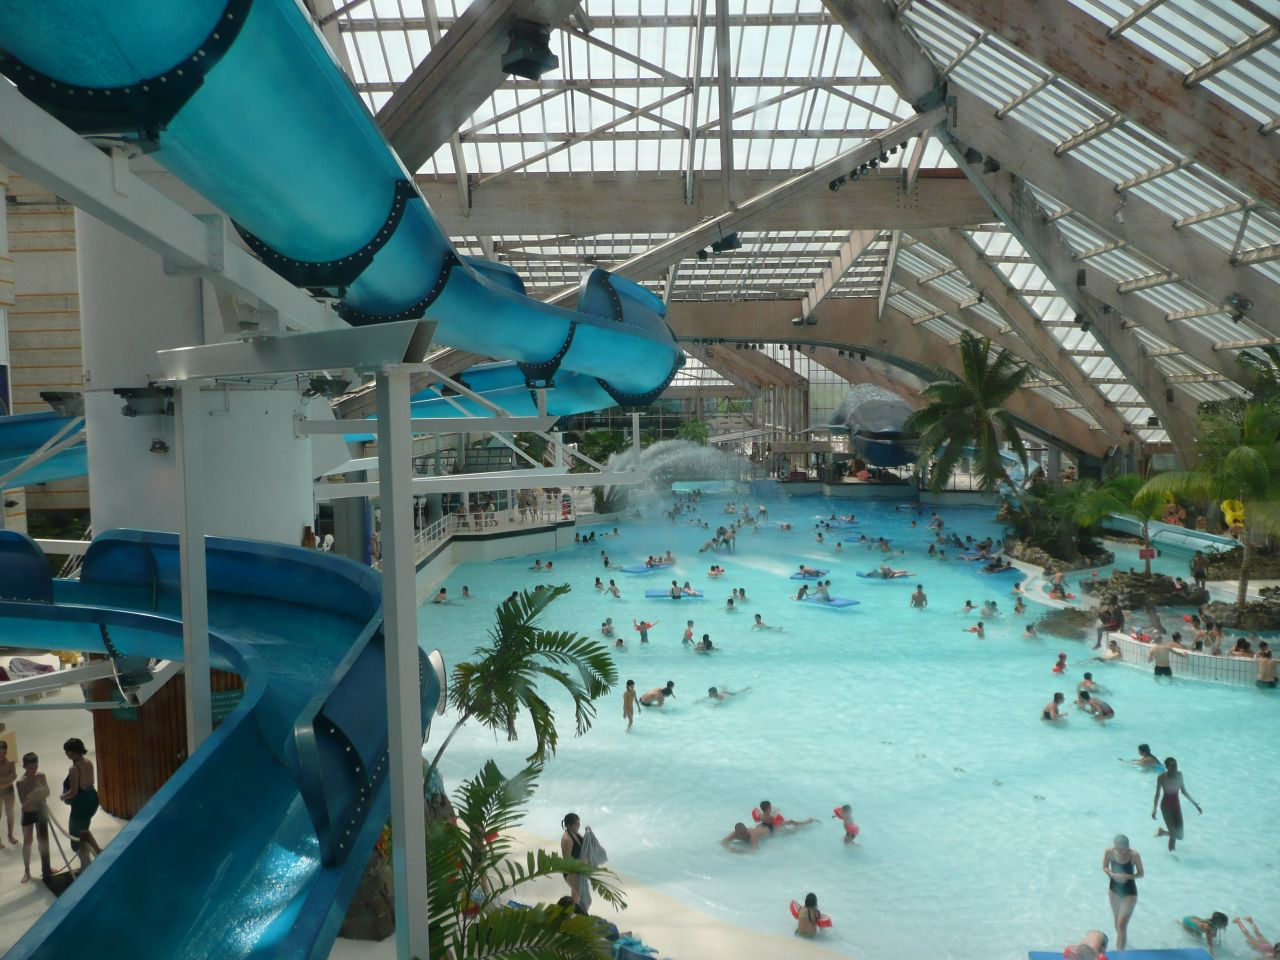 Spa bad aquaboulevard paris paris mal anders for Piscine aquaboulevard